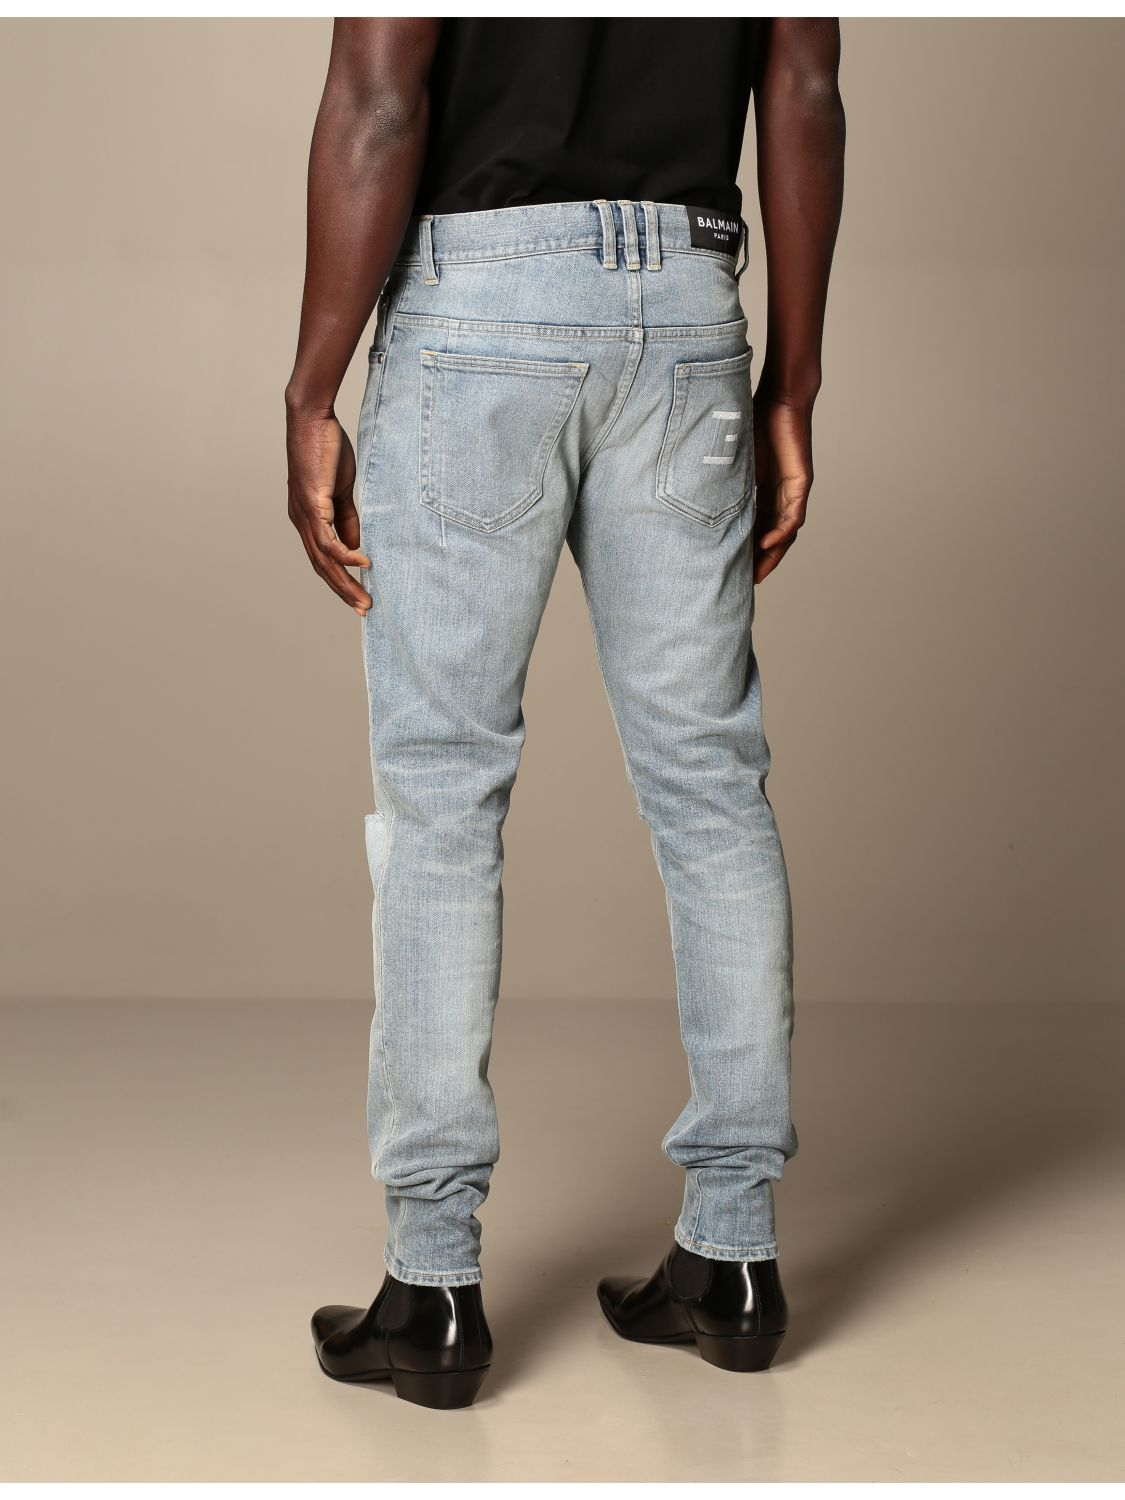 Jeans Balmain: Balmain jeans in stretch denim with logo stone washed 3